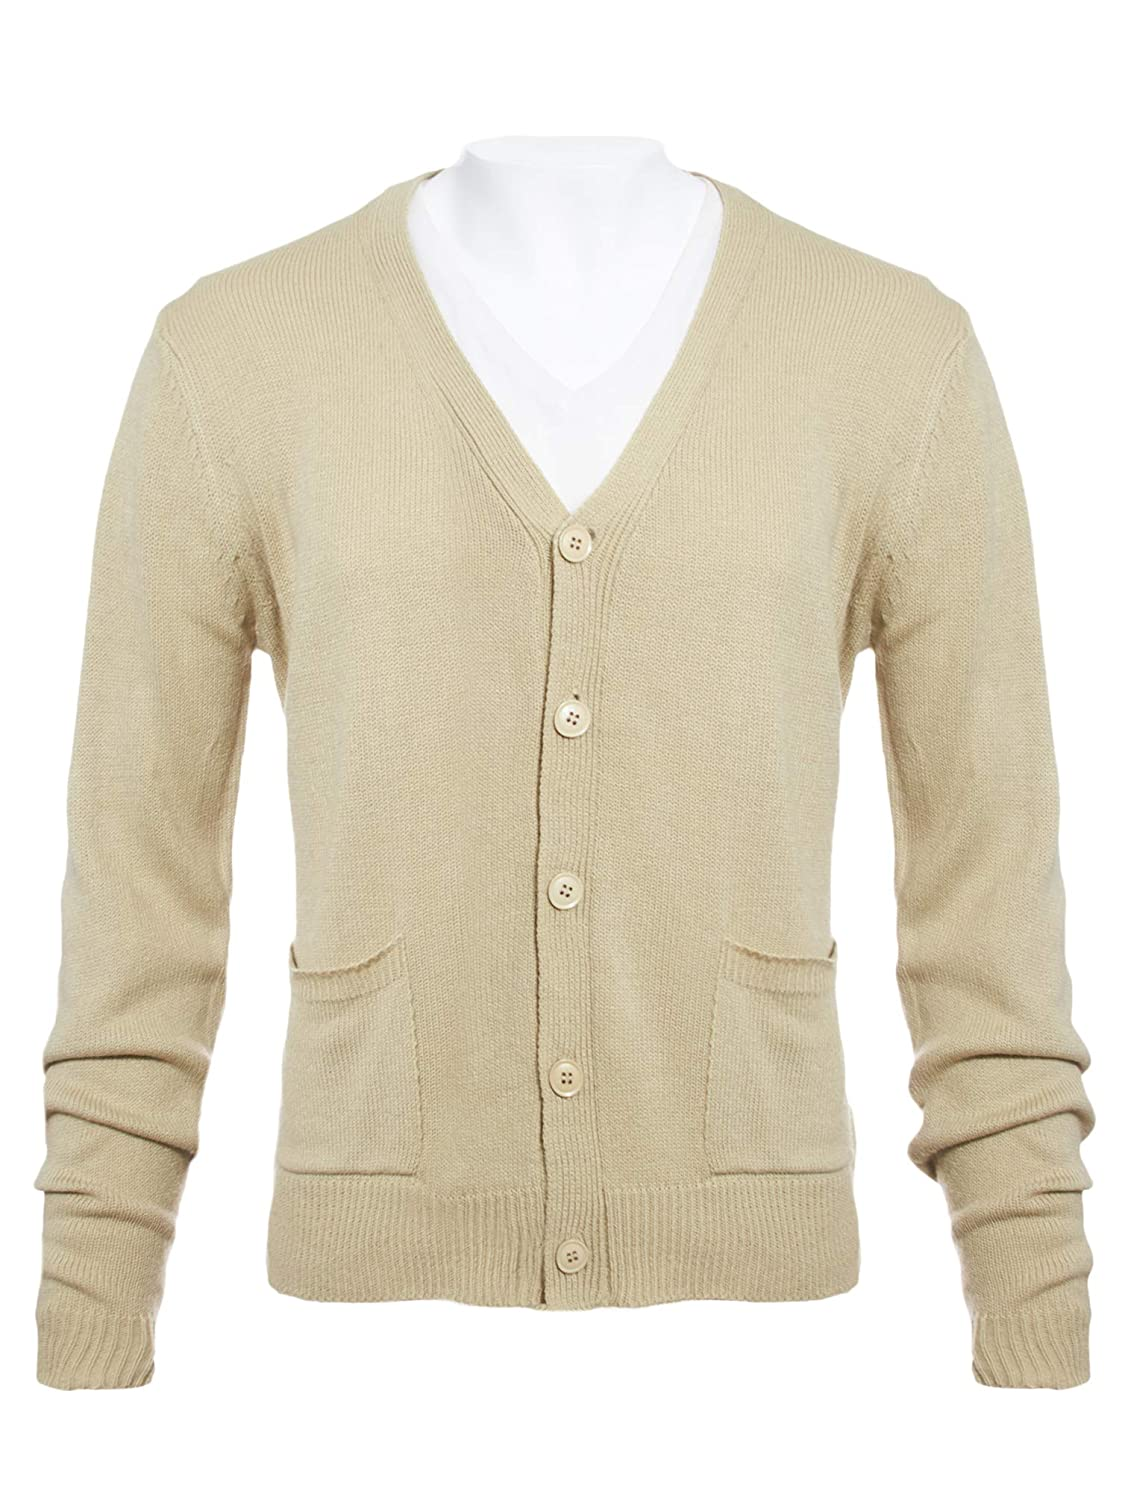 Knit Minded Mens Flat Knit Long Sleeve V-Neck Two Pocket Cardigan Sweater(See More Sizes)